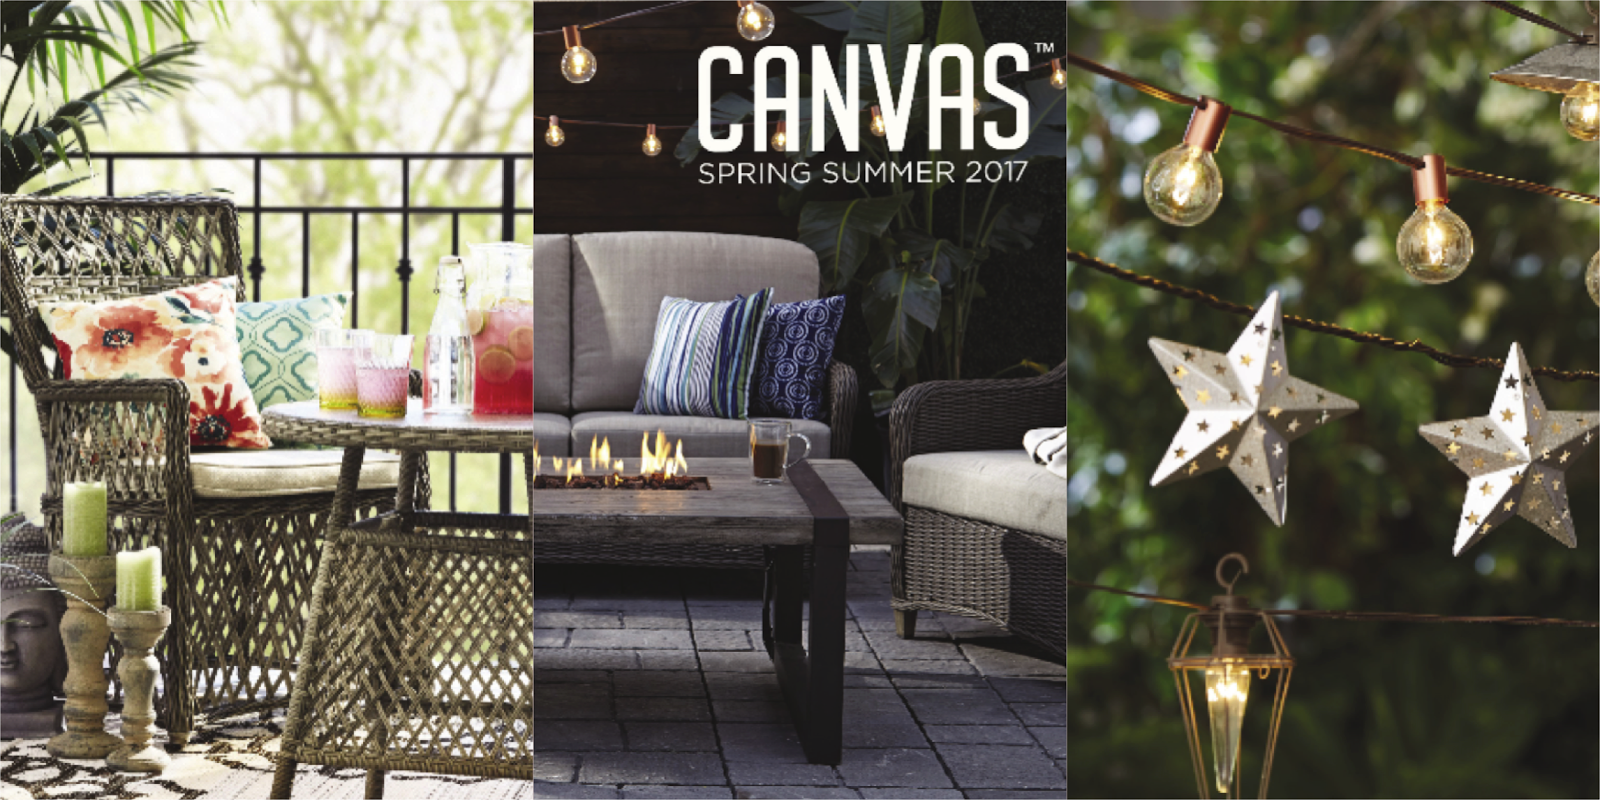 CANVAS Canadian Tire Outdoor Spring Summer Furniture